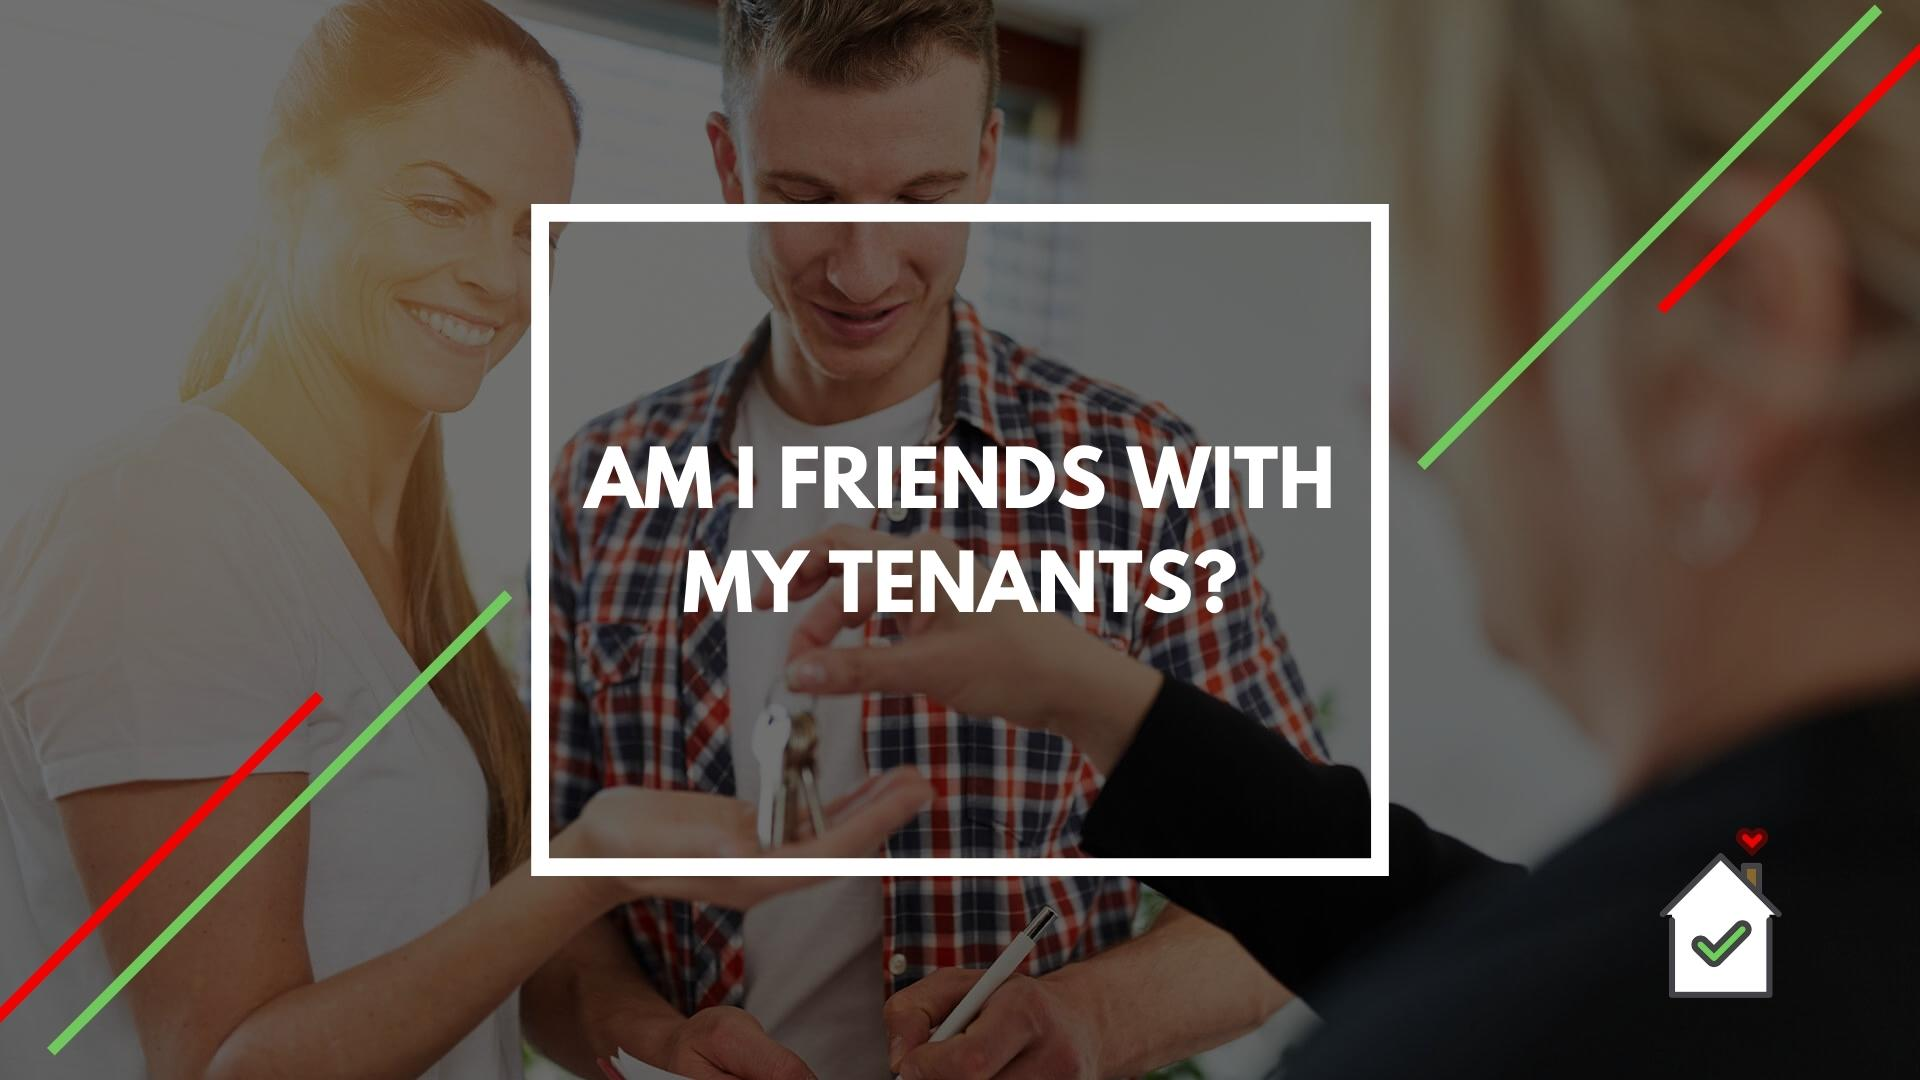 9-tenant-report-am-i-friends-with-my-tenants